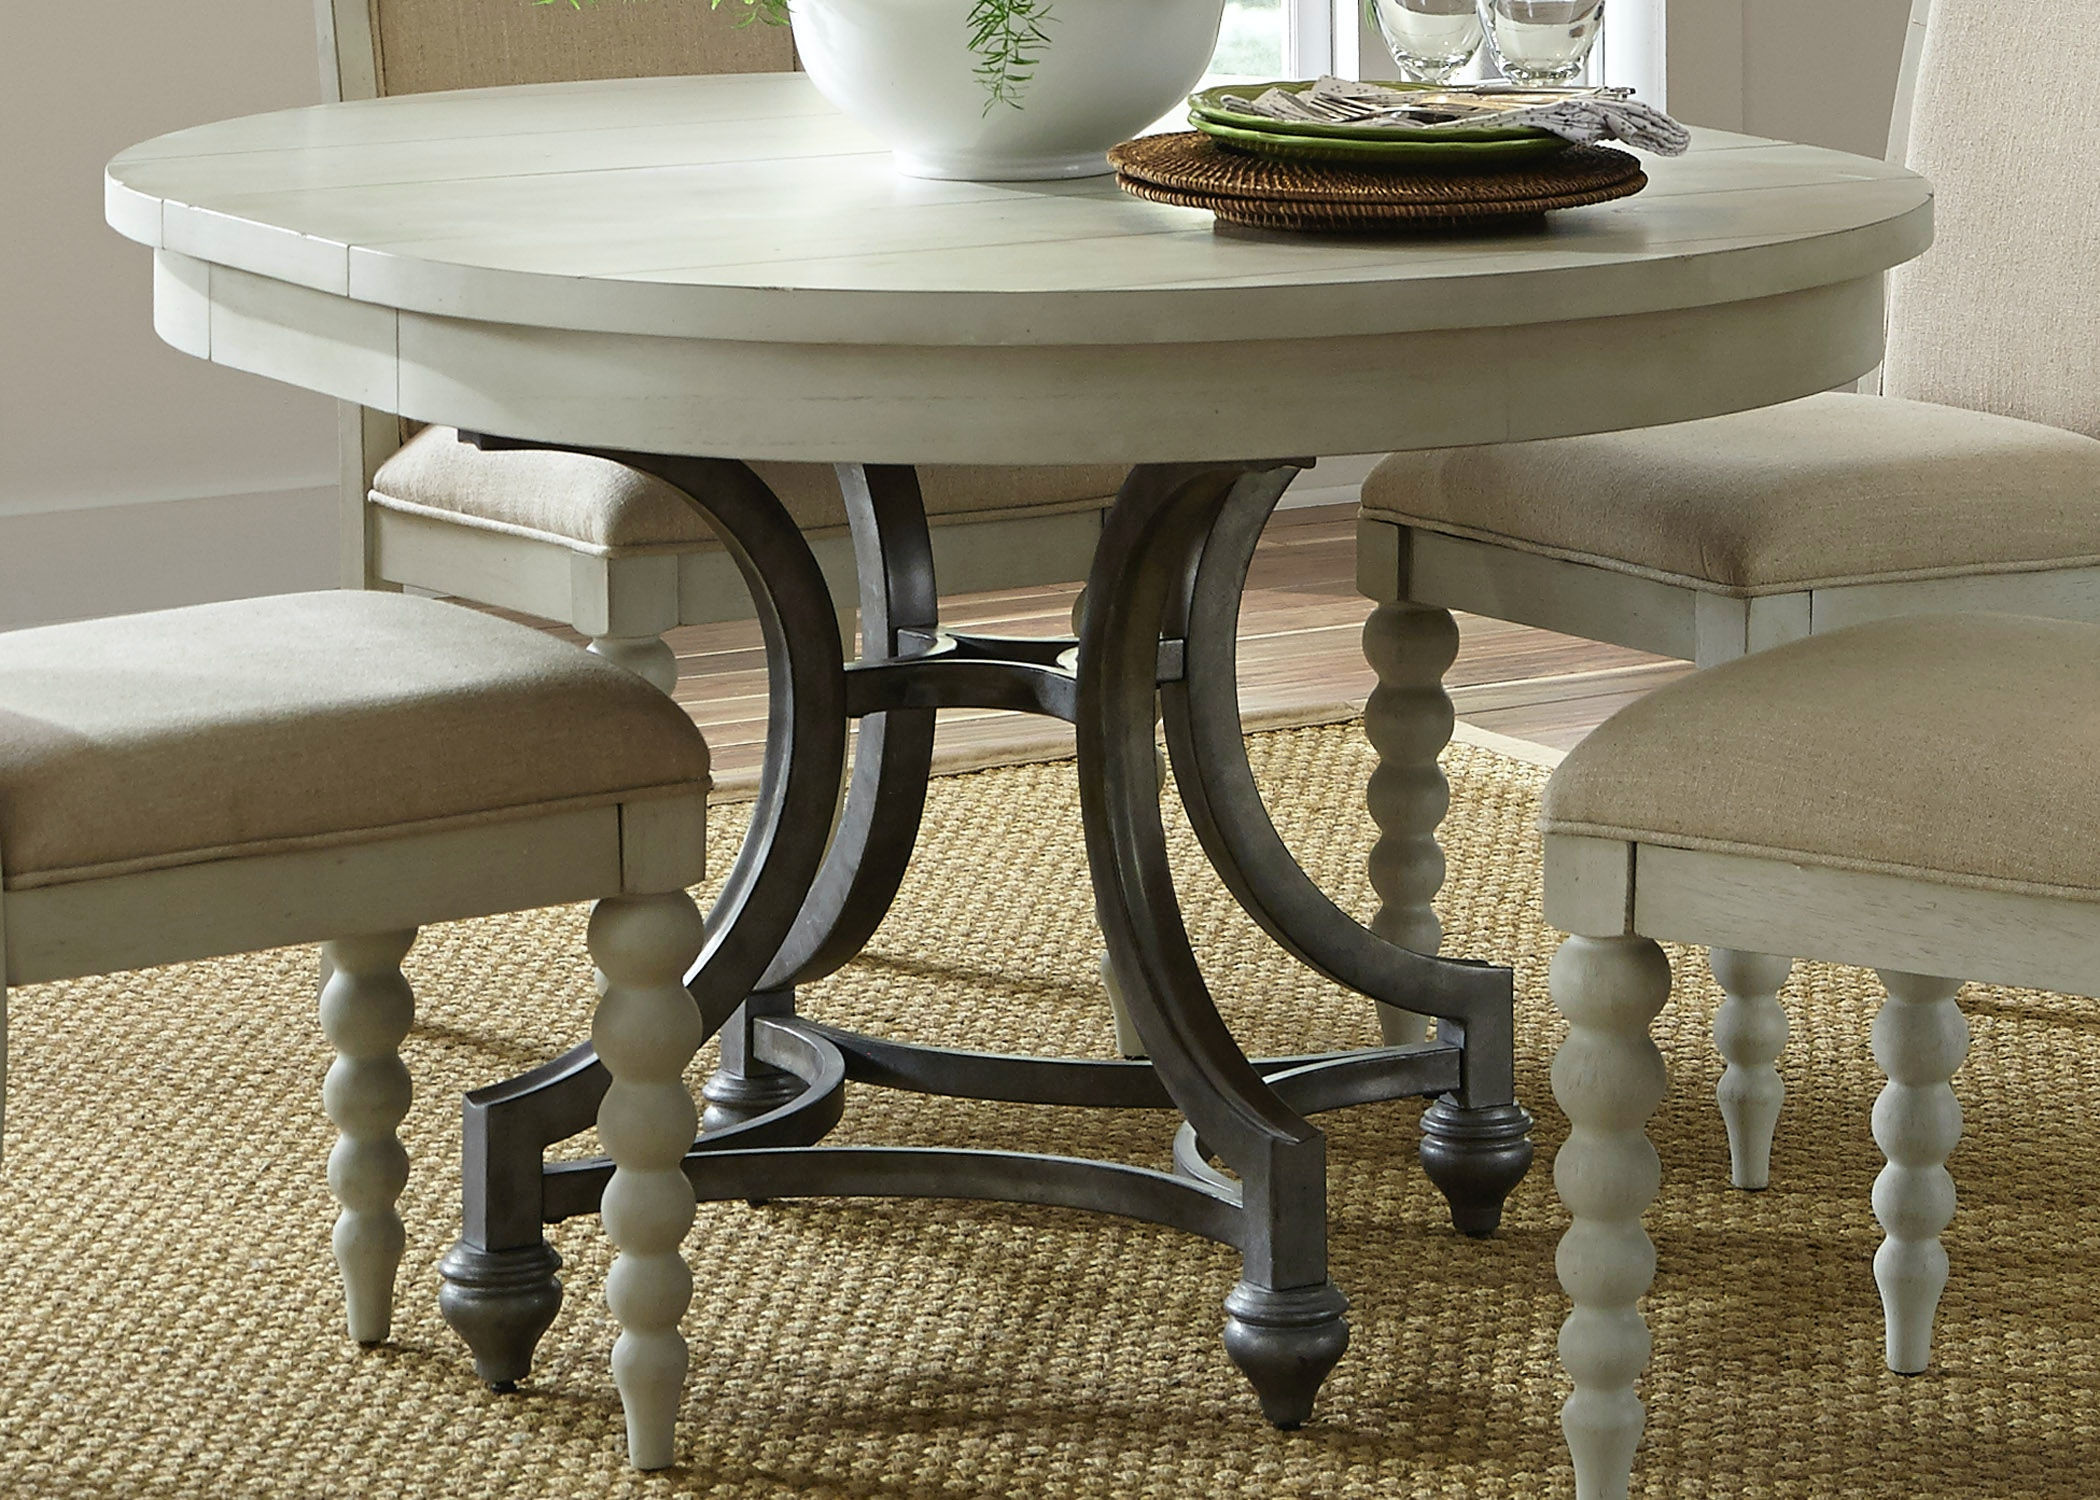 Superb Liberty Furniture Dining Room Round Dining Table 731 T4254 At Lastick  Furniture